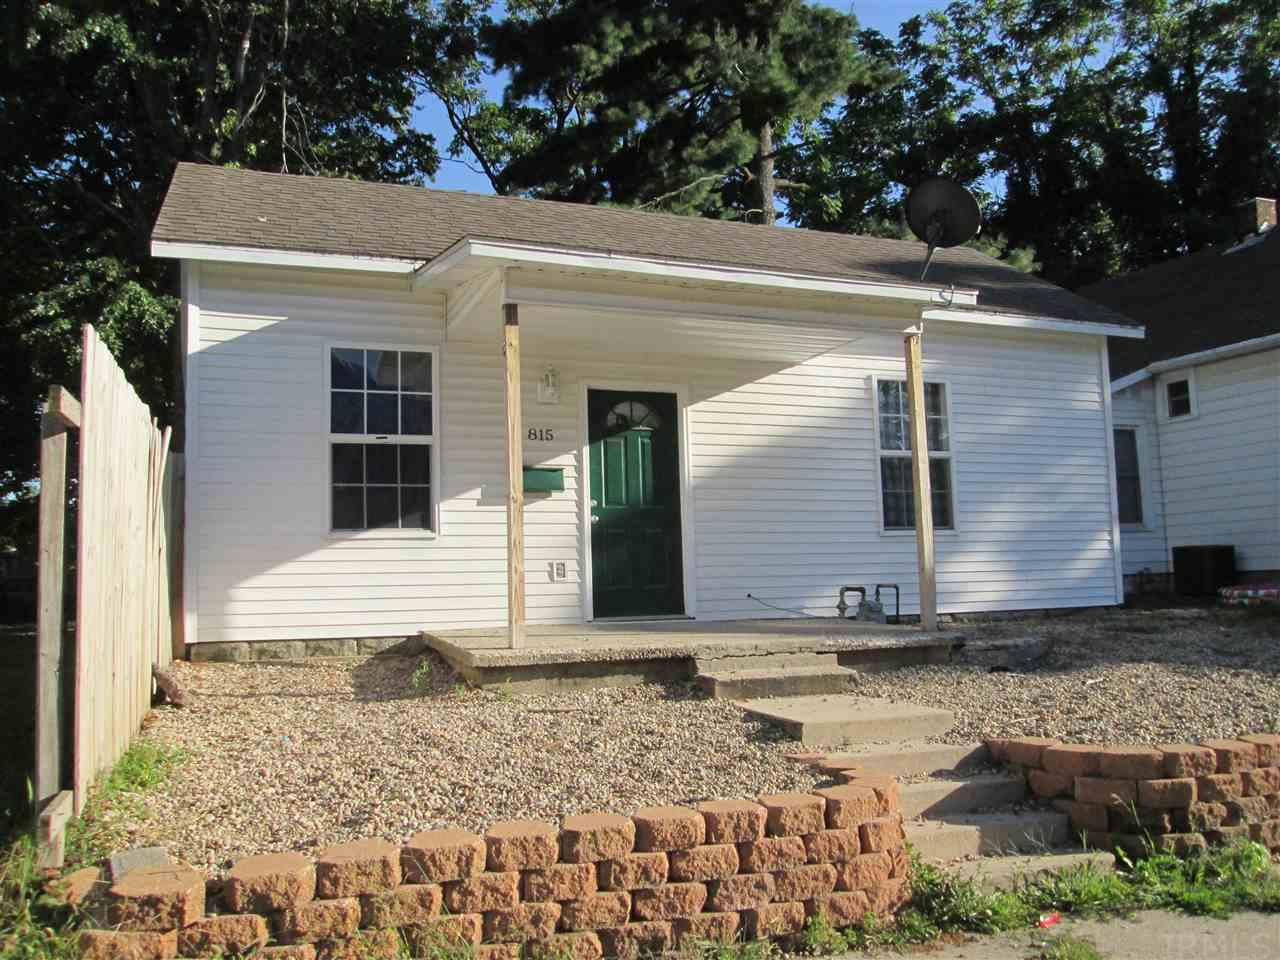 815 N 5th St, Vincennes, IN 47591